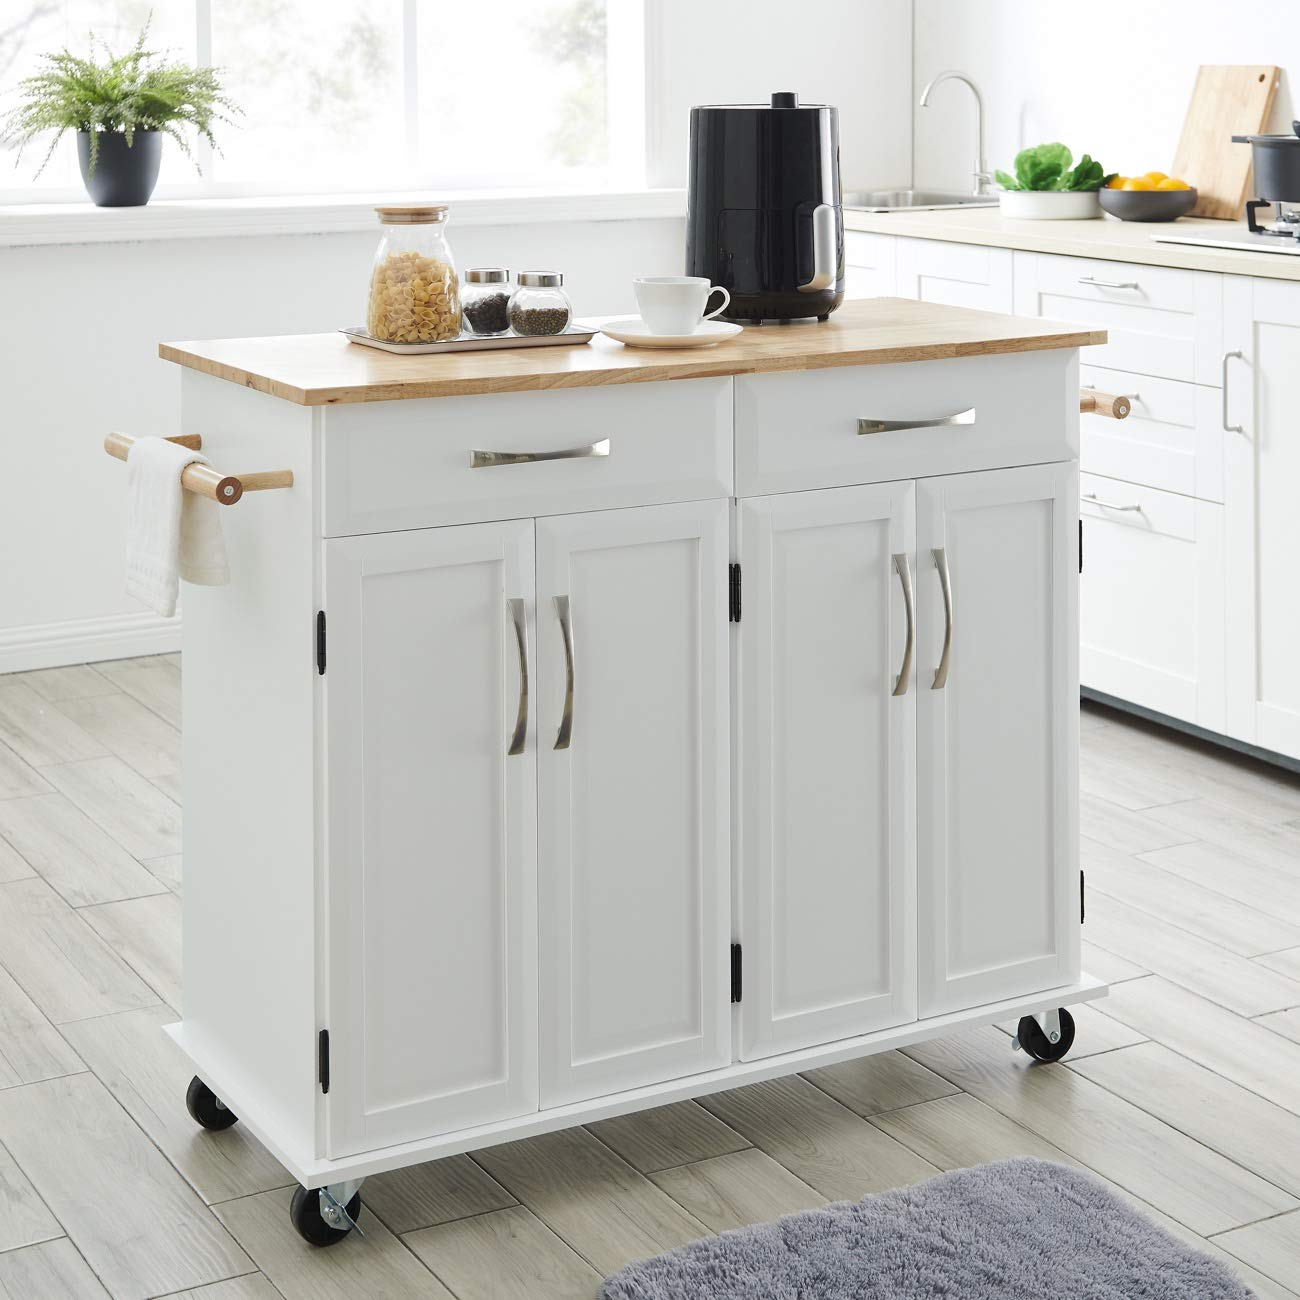 BELLEZE Rolling Kitchen Cart On Wheels Cabinet Storage Cart Island Heavy Duty Storage Rolling Trolley by Belleze